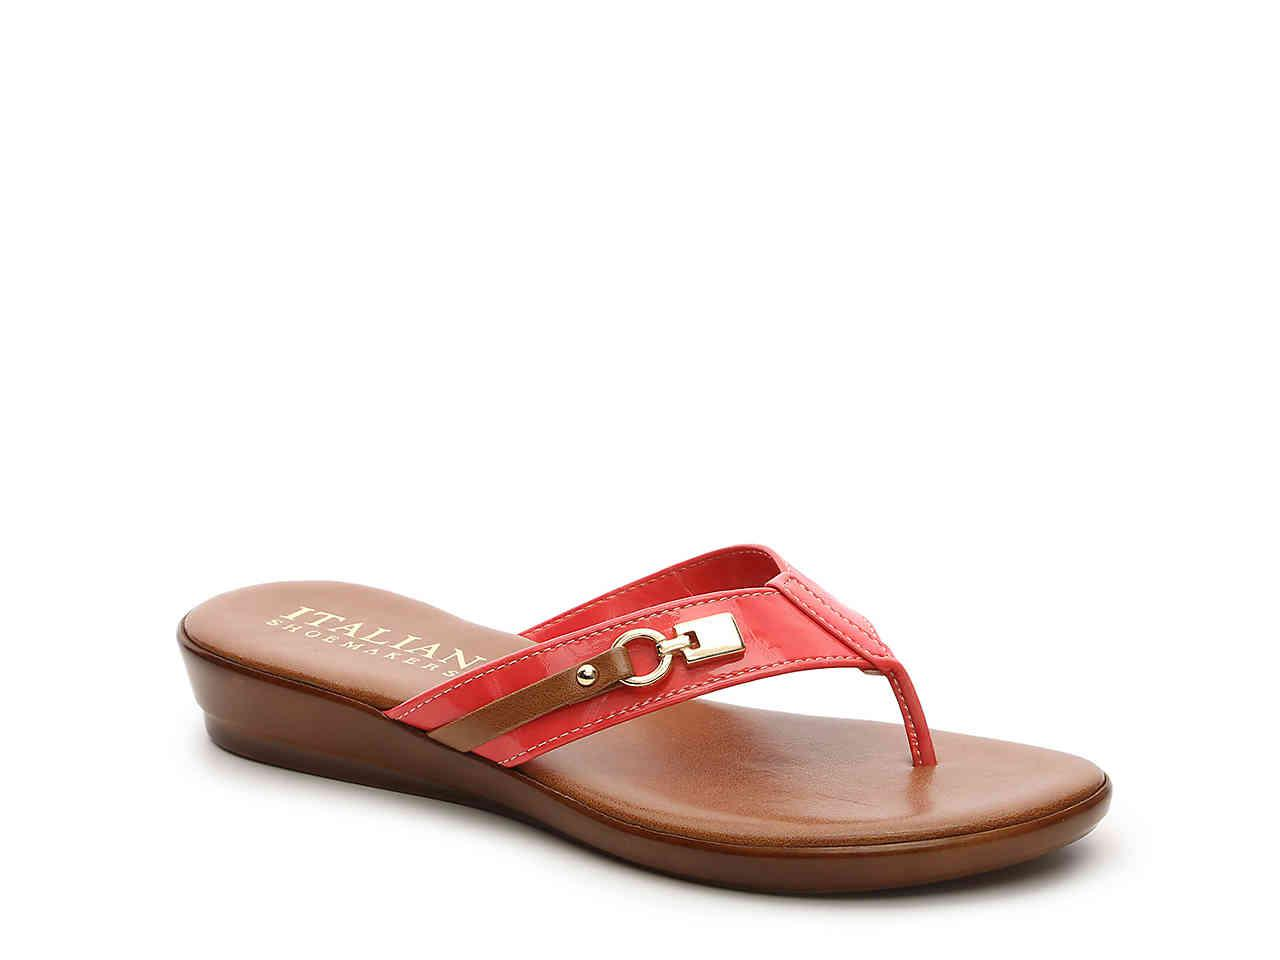 0a81553e3 Lyst - Italian Shoemakers Lock Wedge Sandal in Red